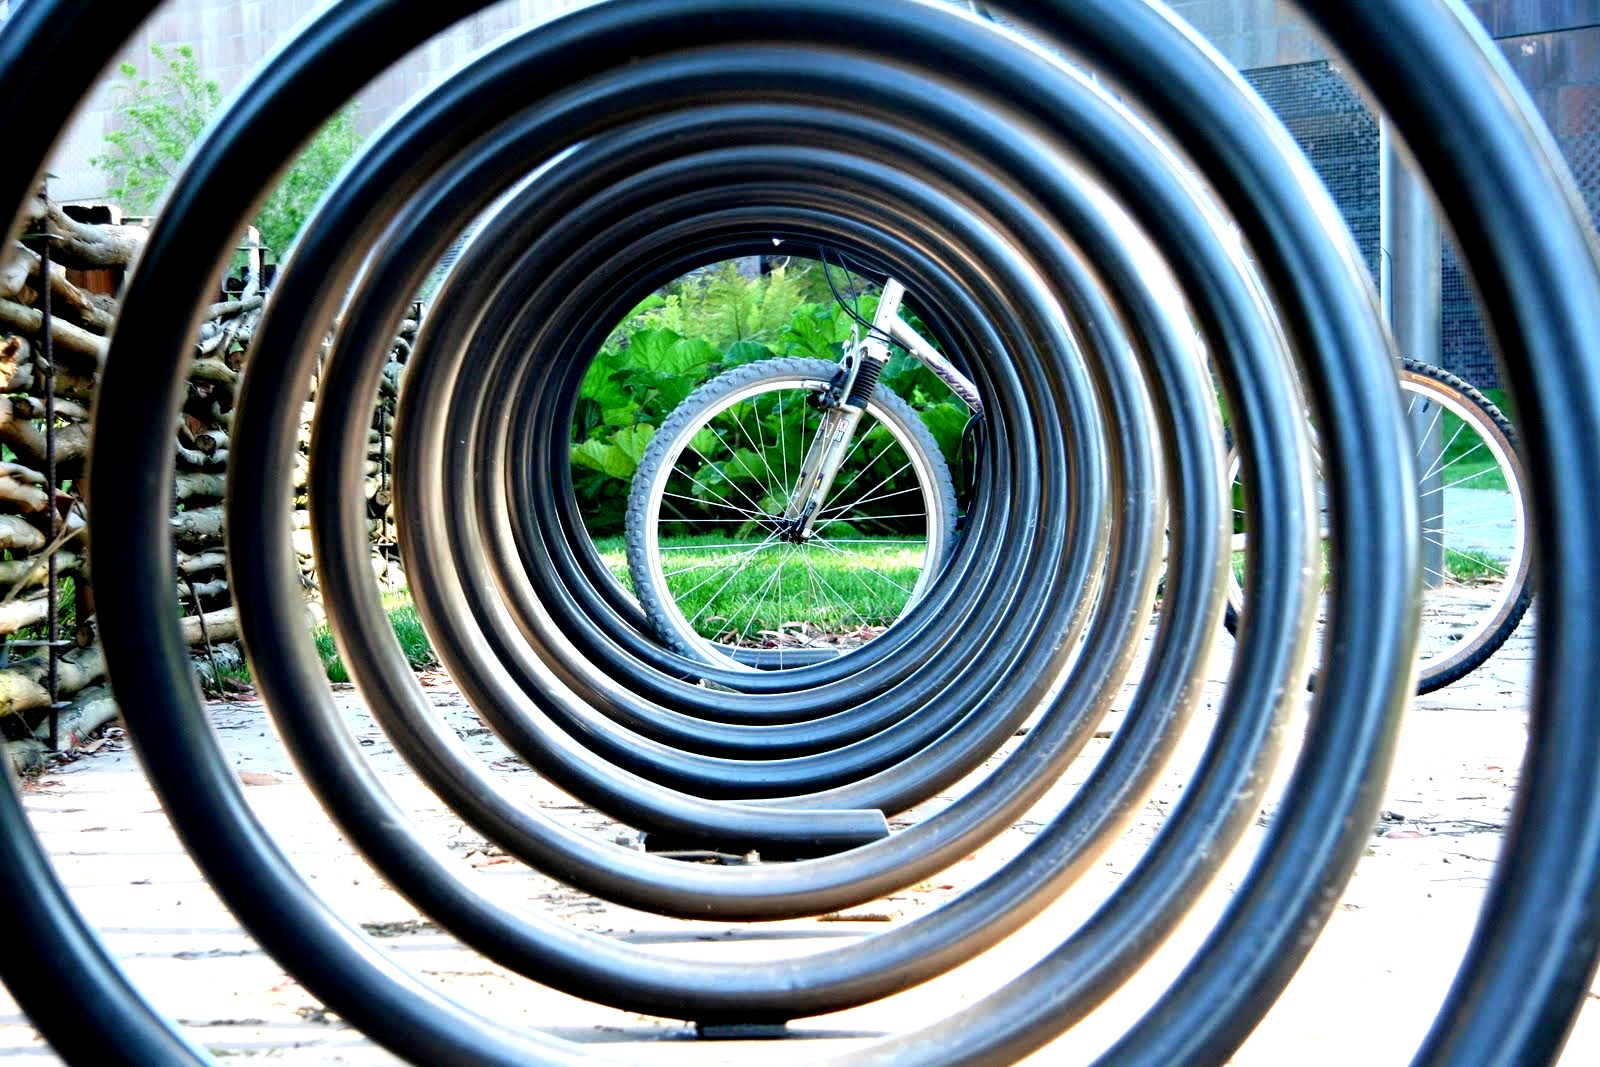 Round and Round - 19 Images of Circular Things